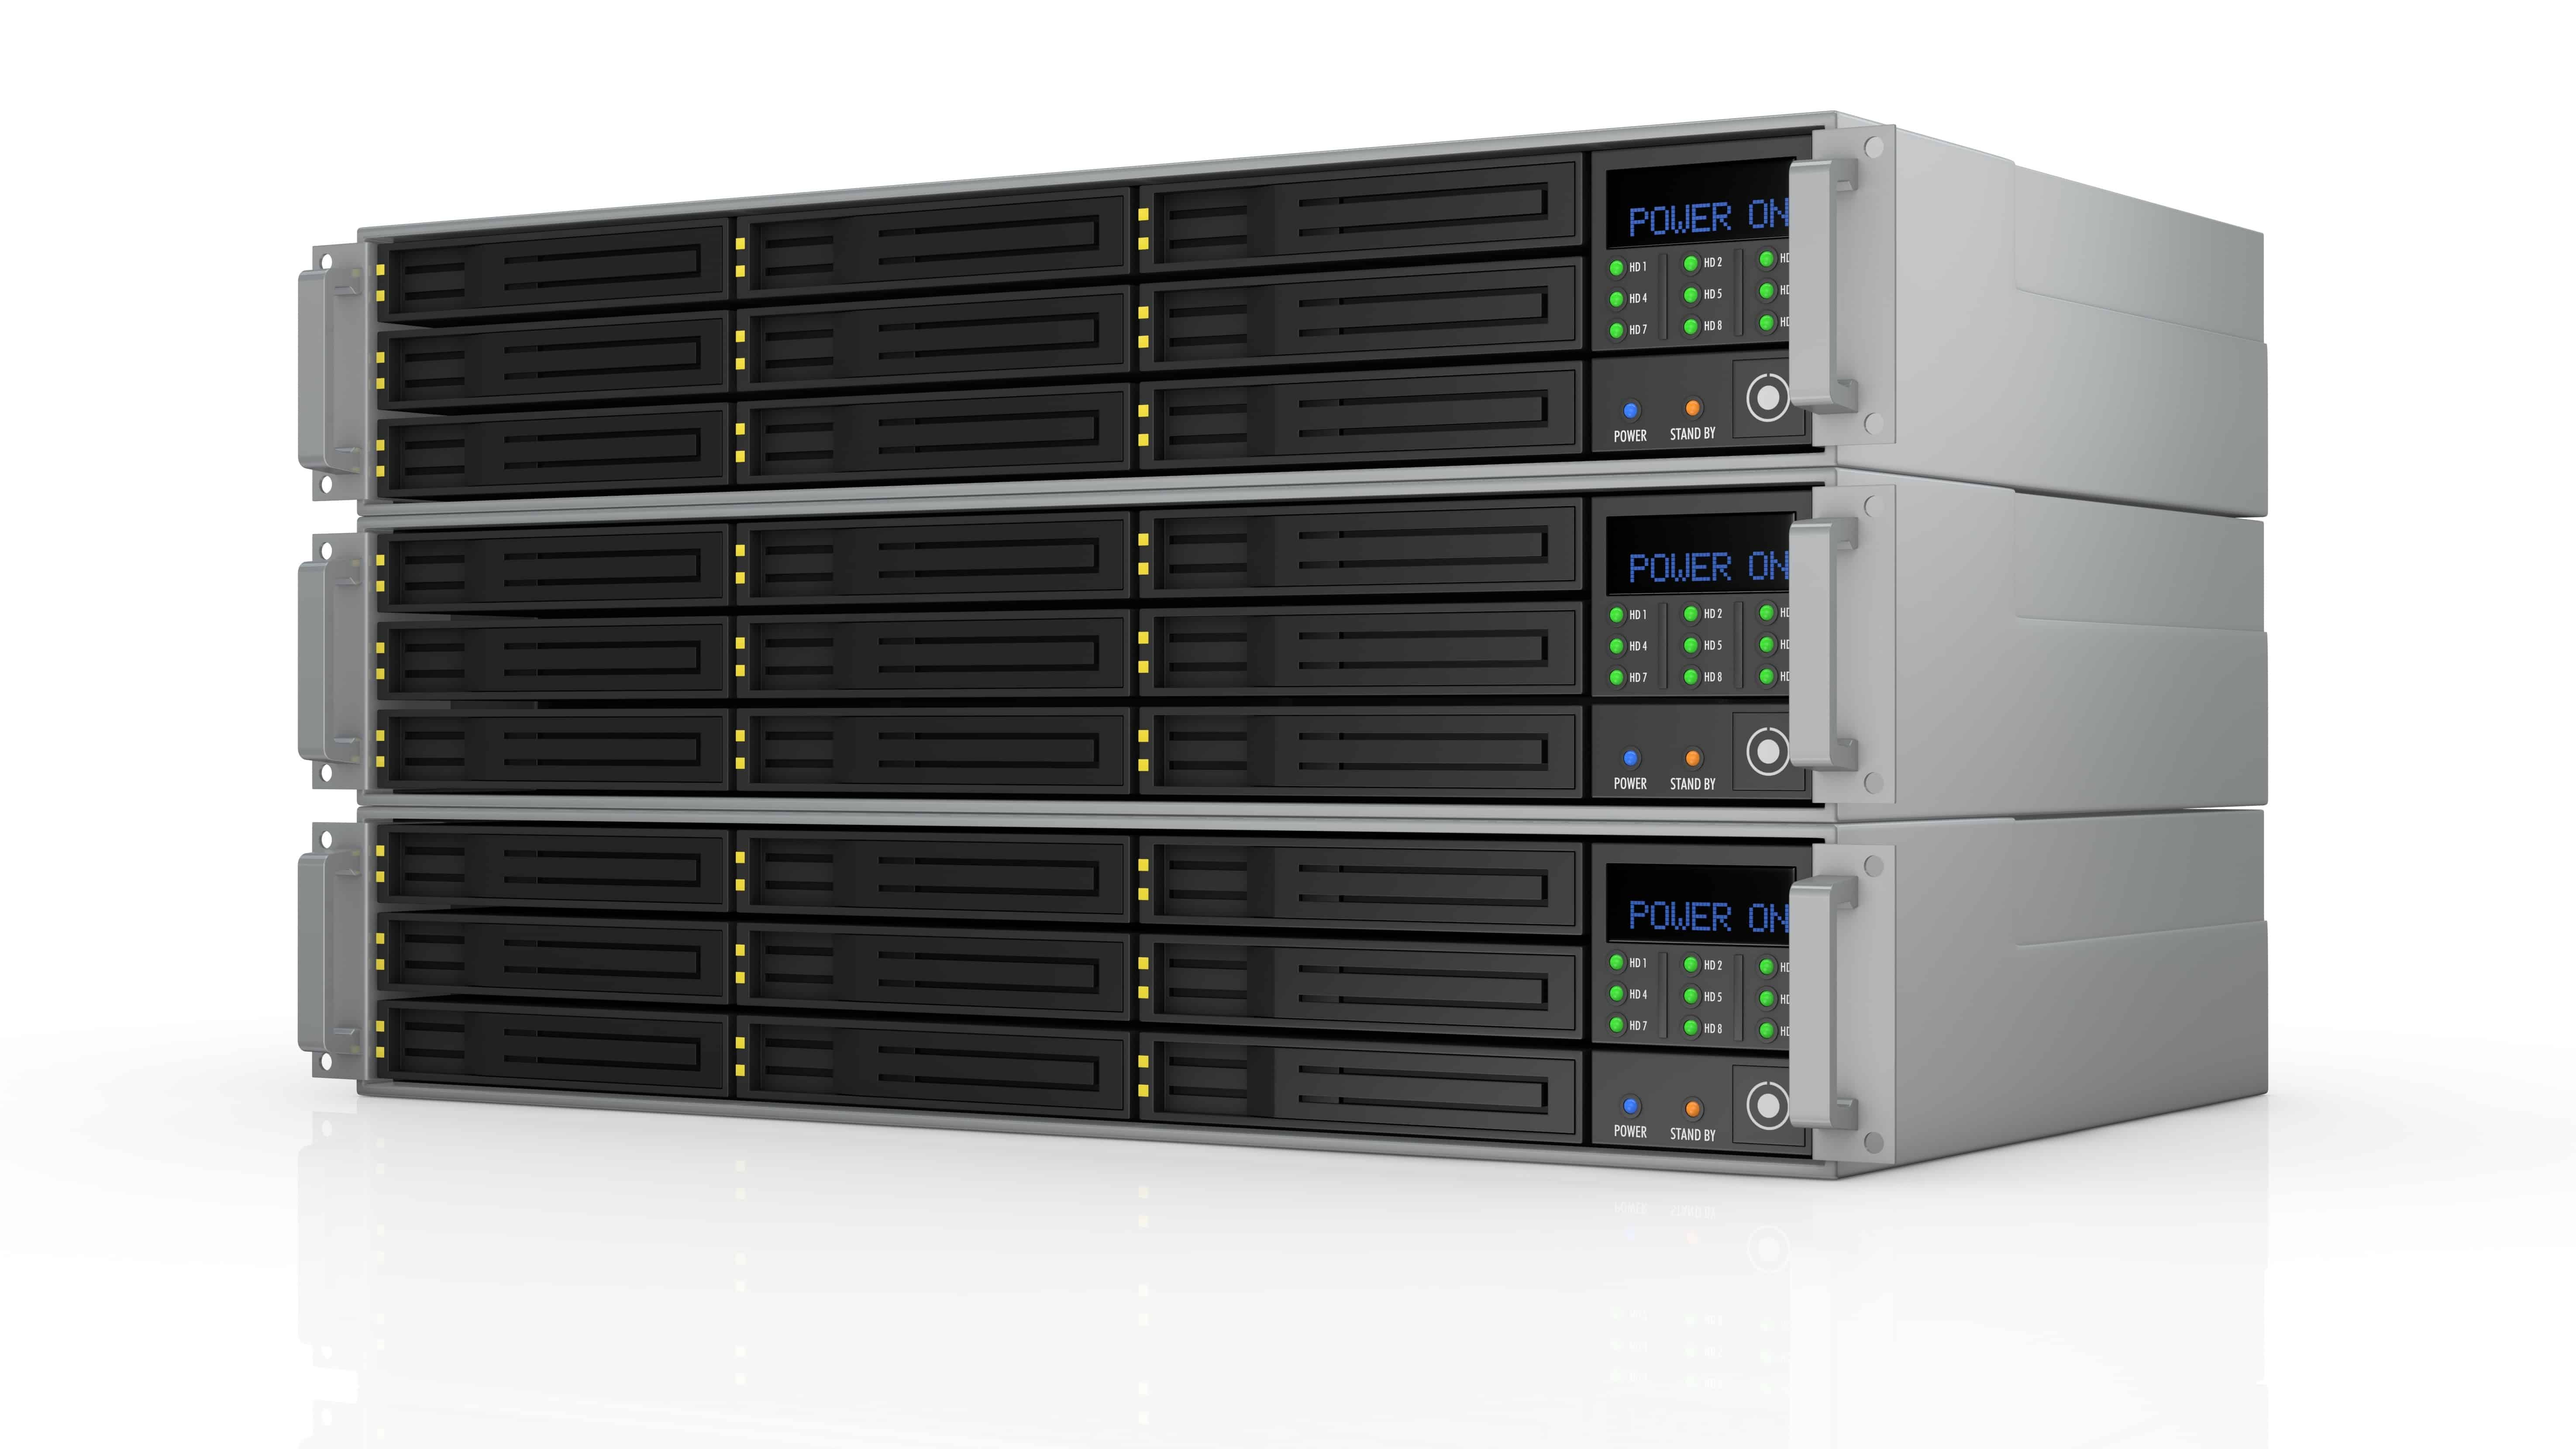 Best Network Attached Storage 2020: Shopping Guide & Review